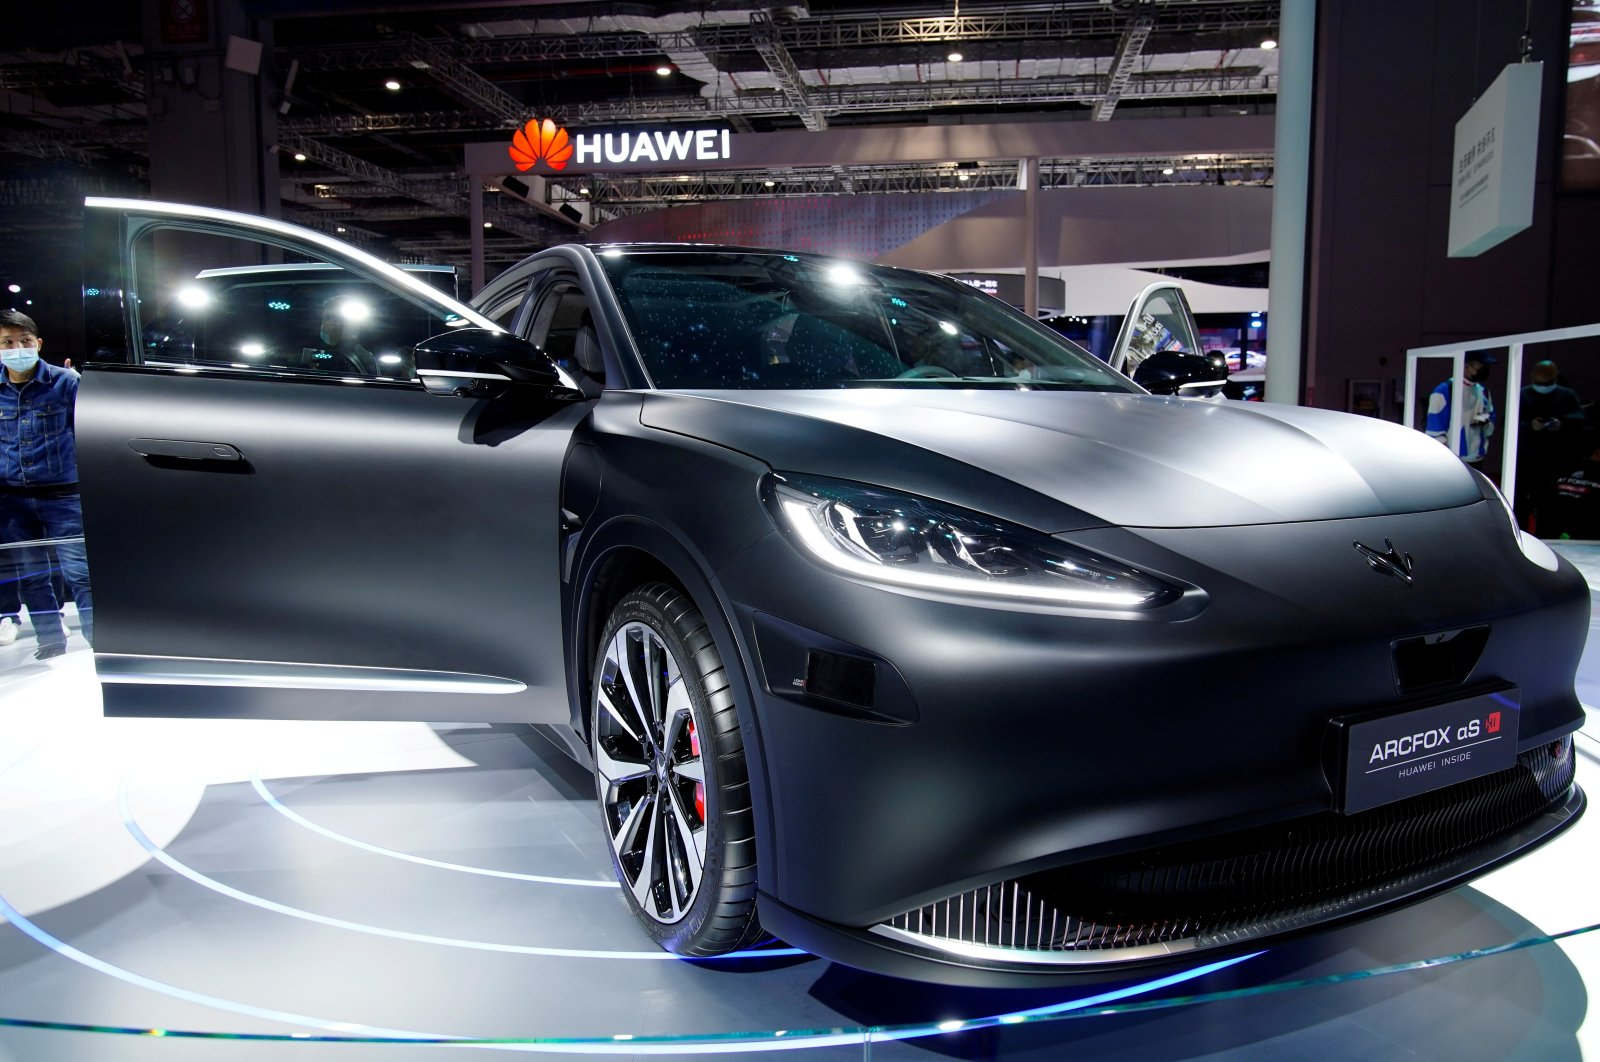 An Arcfox Alpha-S HI (Huawei Inside) electric vehicle is seen displayed during a media day for the Auto Shanghai show in Shanghai, China, April 19, 2021. (Reuters Photo)